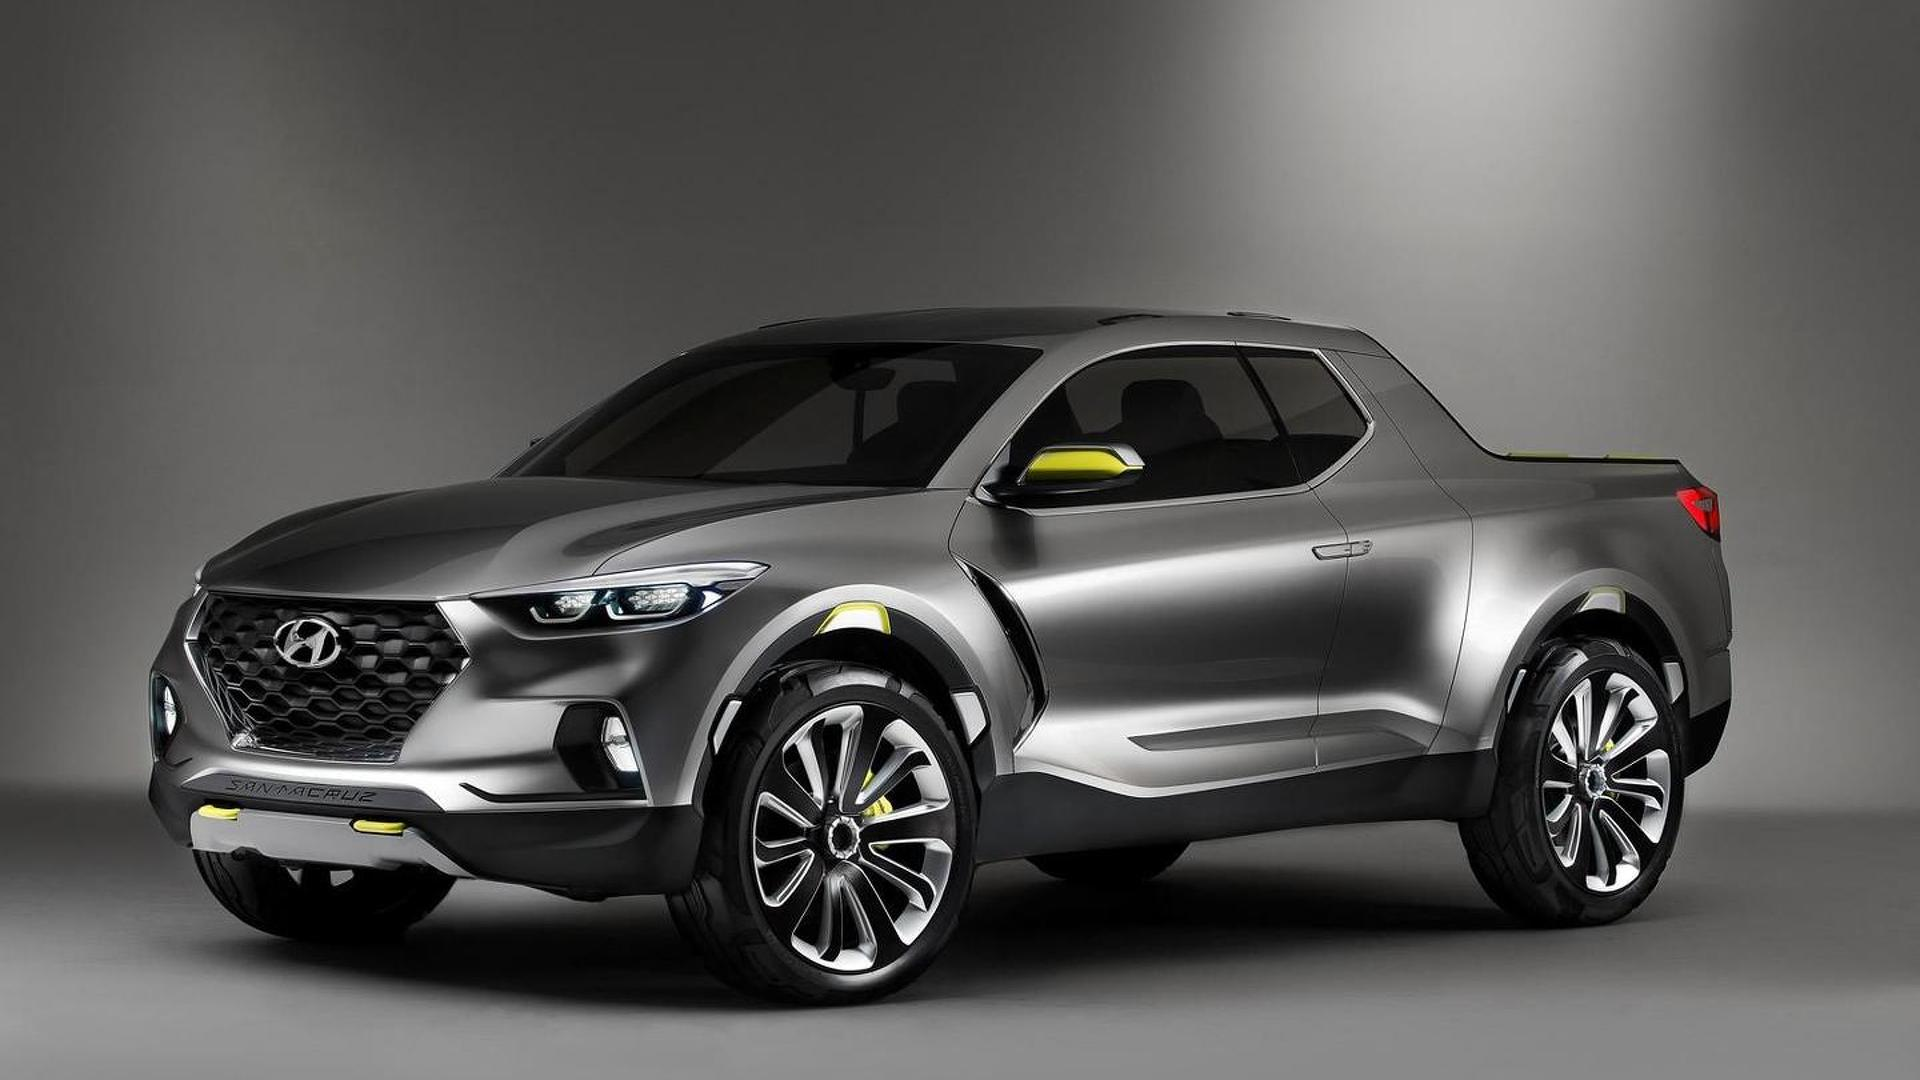 The South Korean car manufacturer plans to launch a pickup truck loosely based on the 2015 Santa Cruz Concept (see the photos and the video). Even though no details are available yet, the company has already announced a performance version.